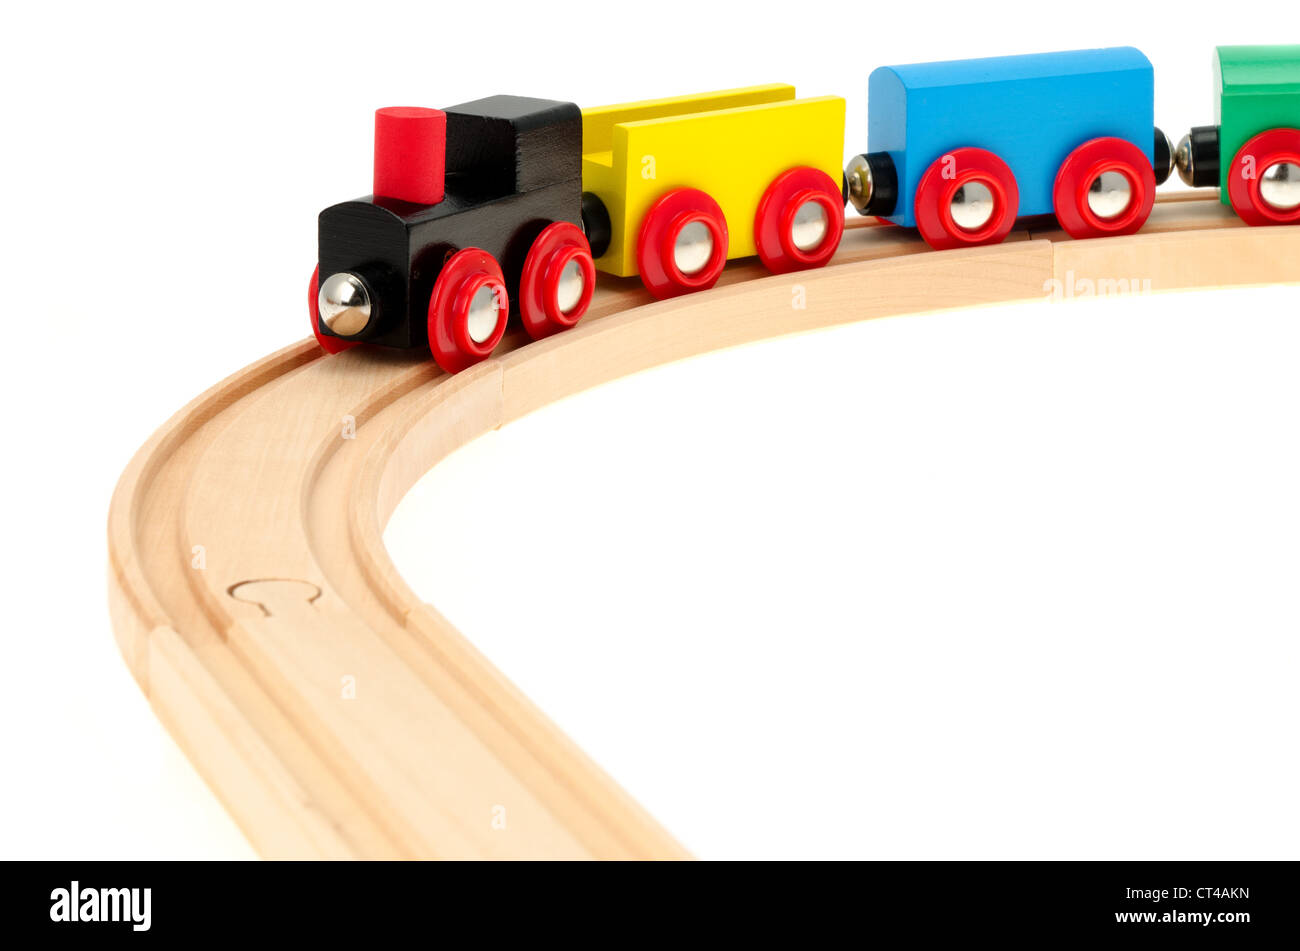 A Child S Wooden Toy Train And Track Studio Shot With A White